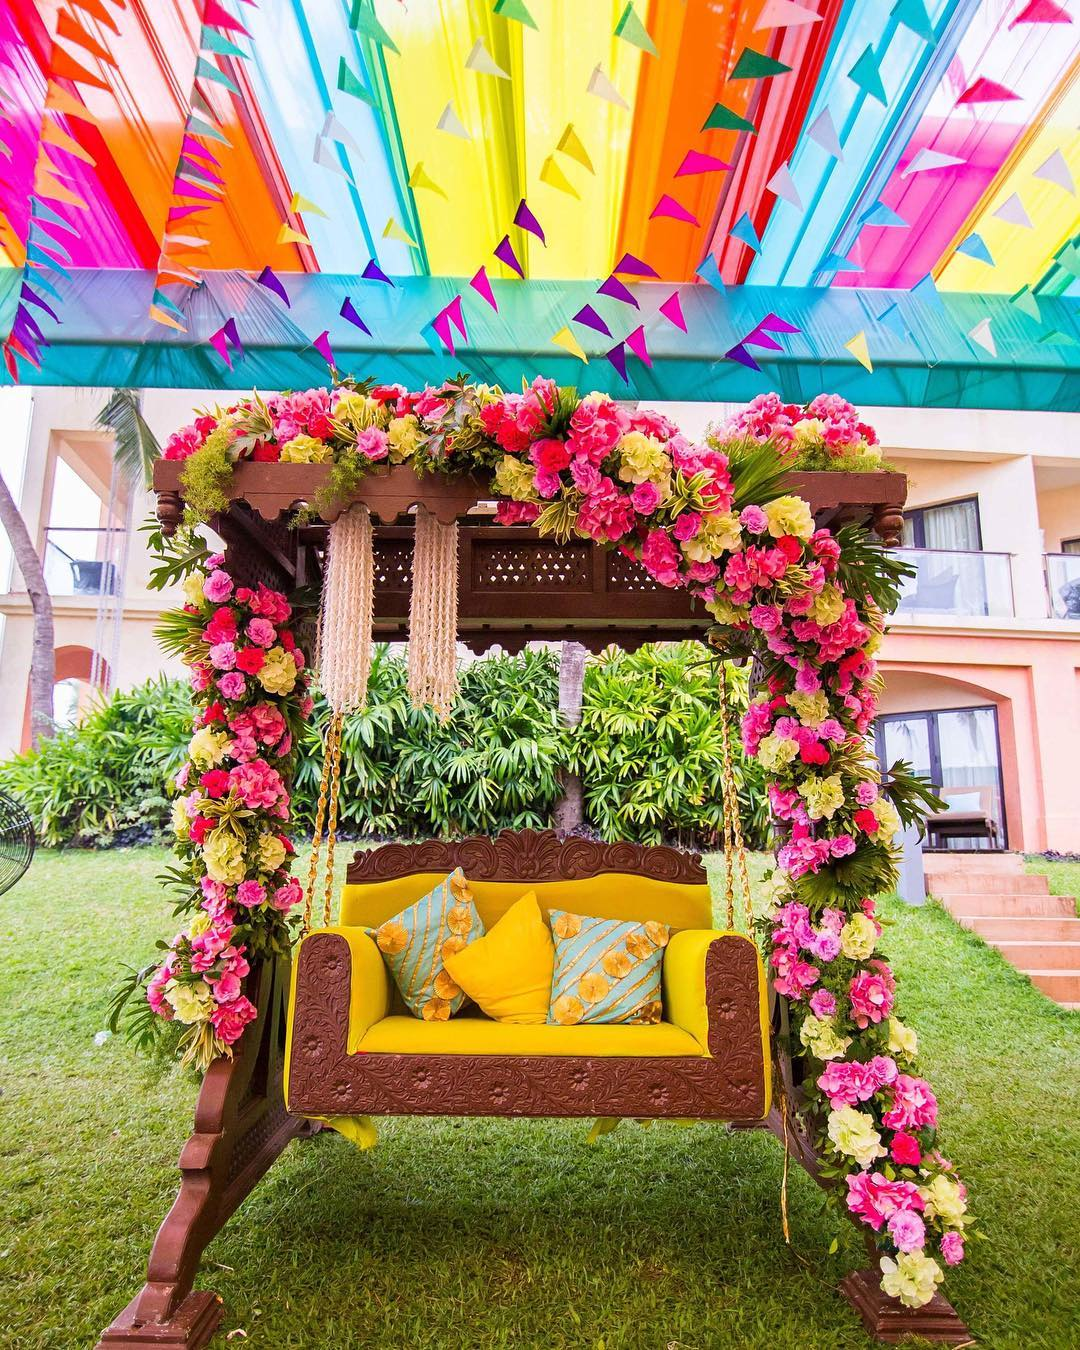 Real Weddings Decorations: Quirky Haldi Decor Ideas To Steal From Real Weddings